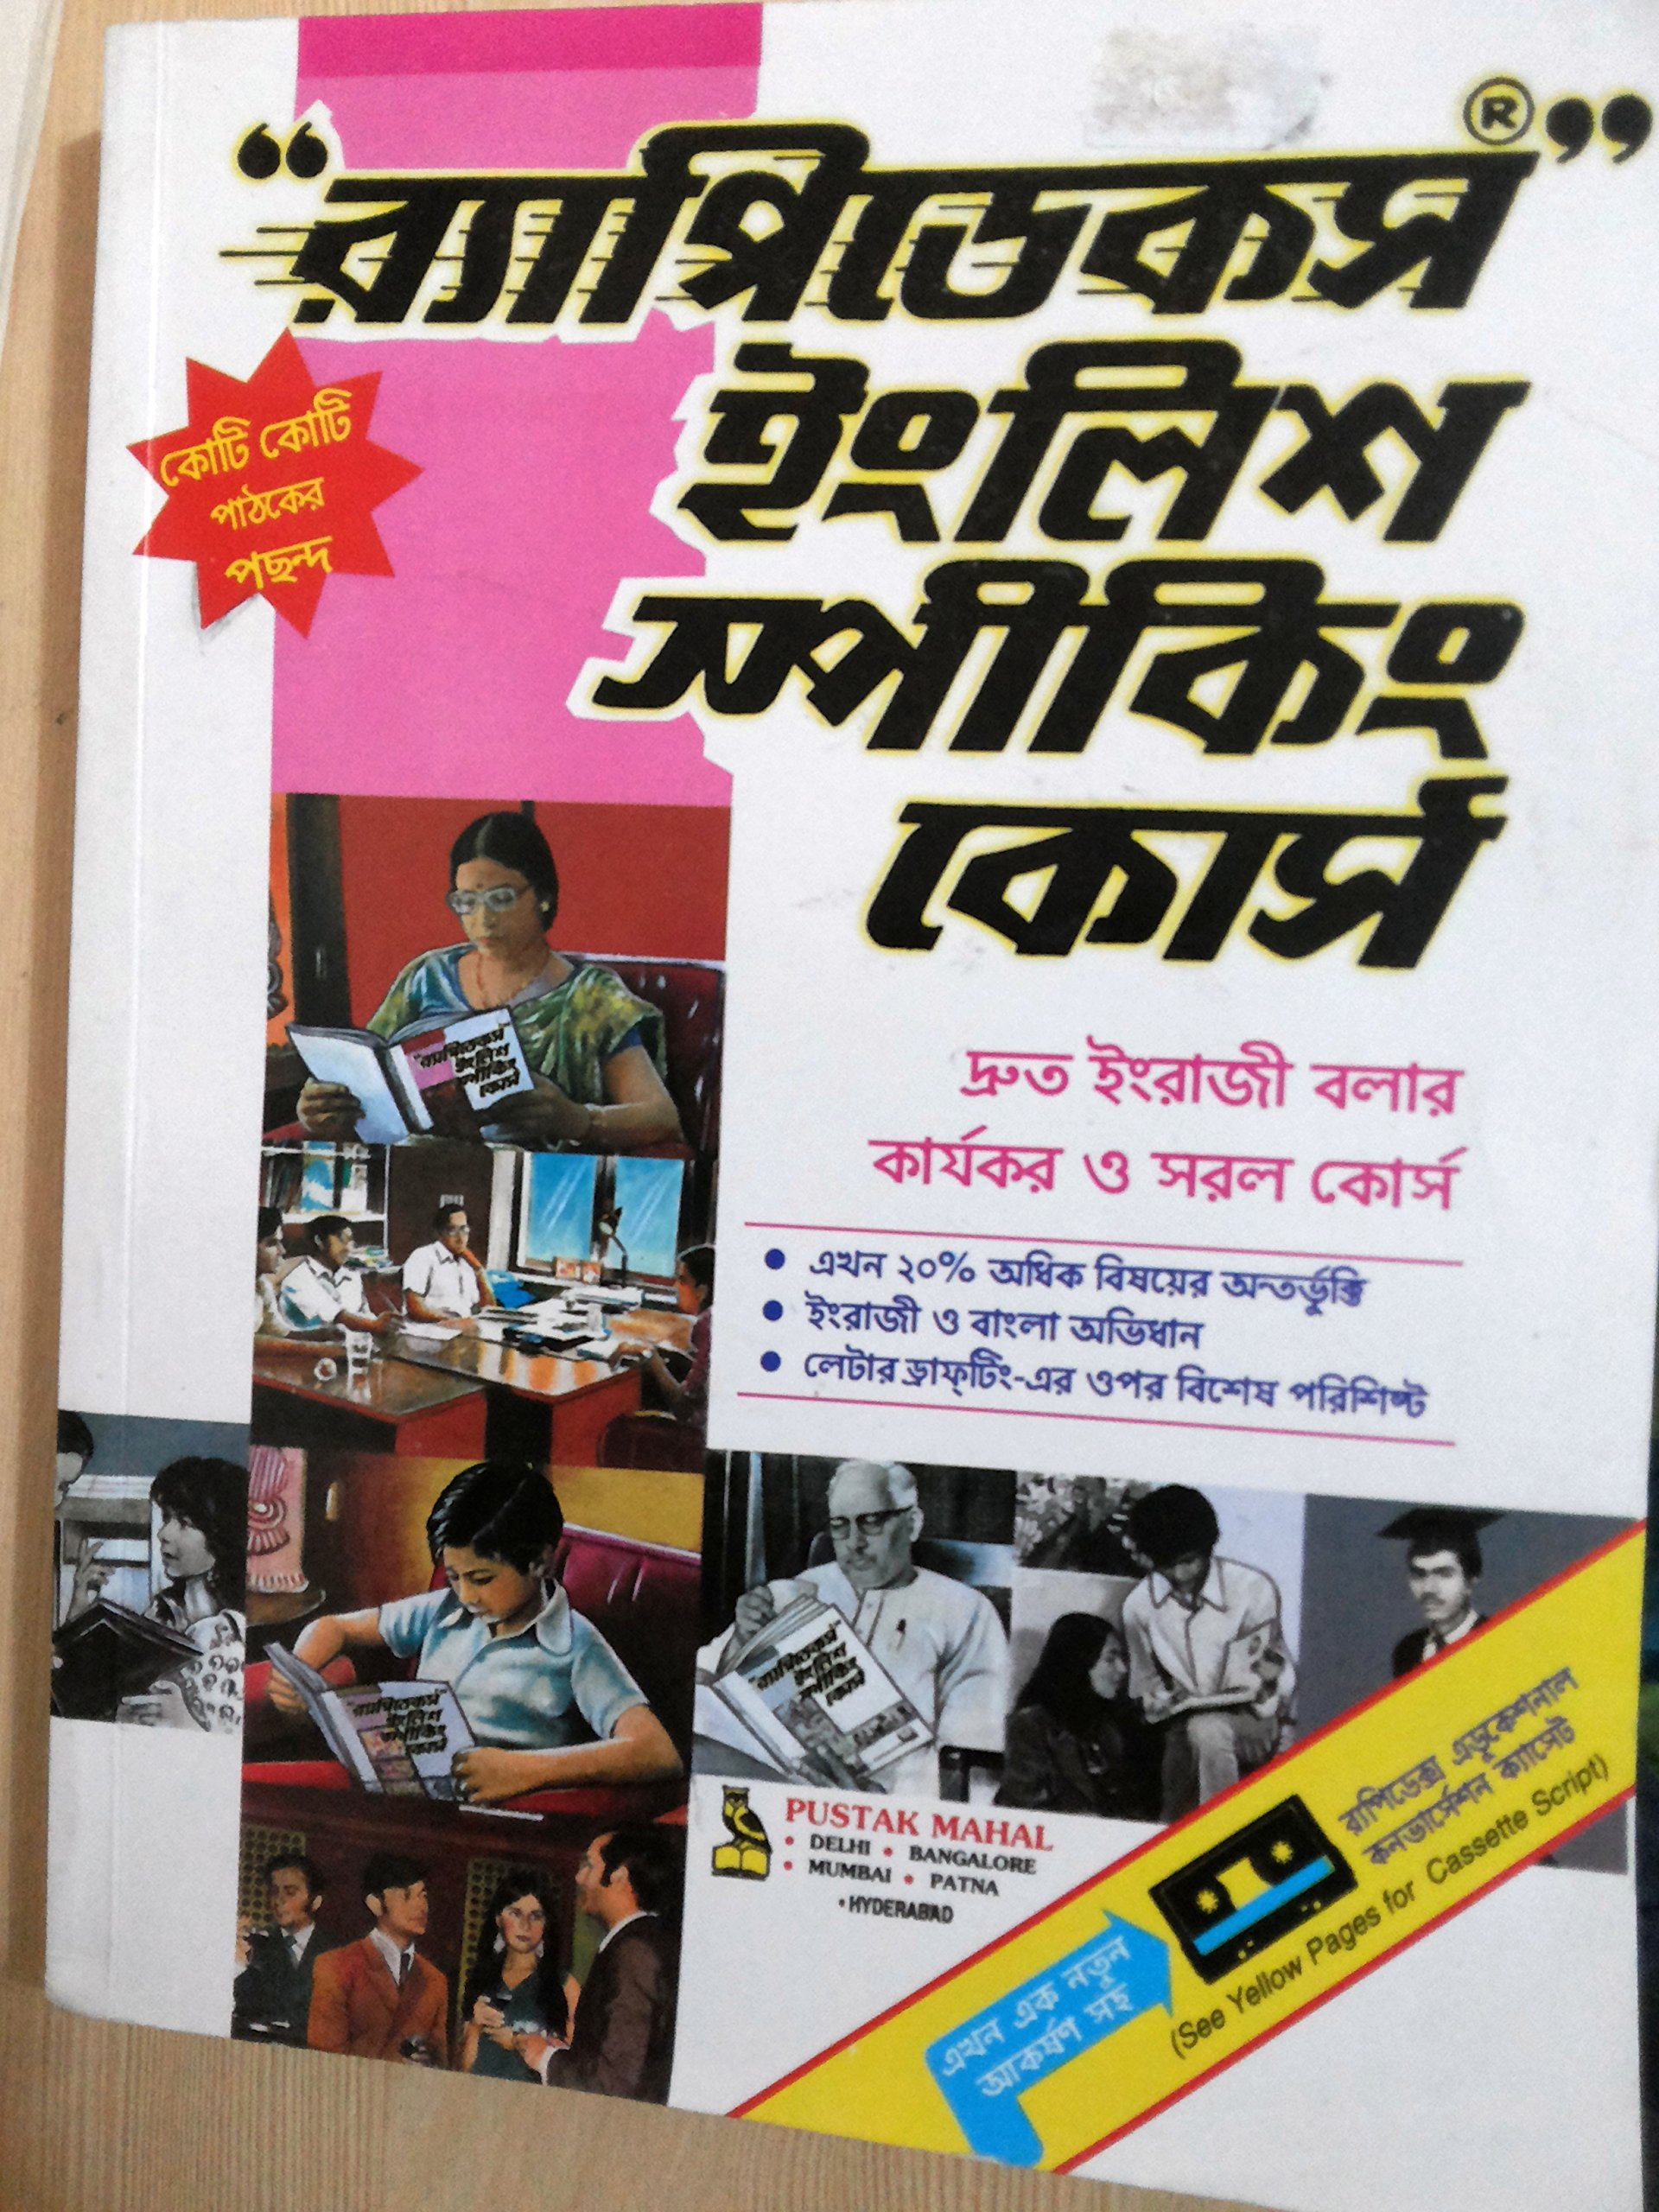 free download rapidex english speaking course book in bengali pdf